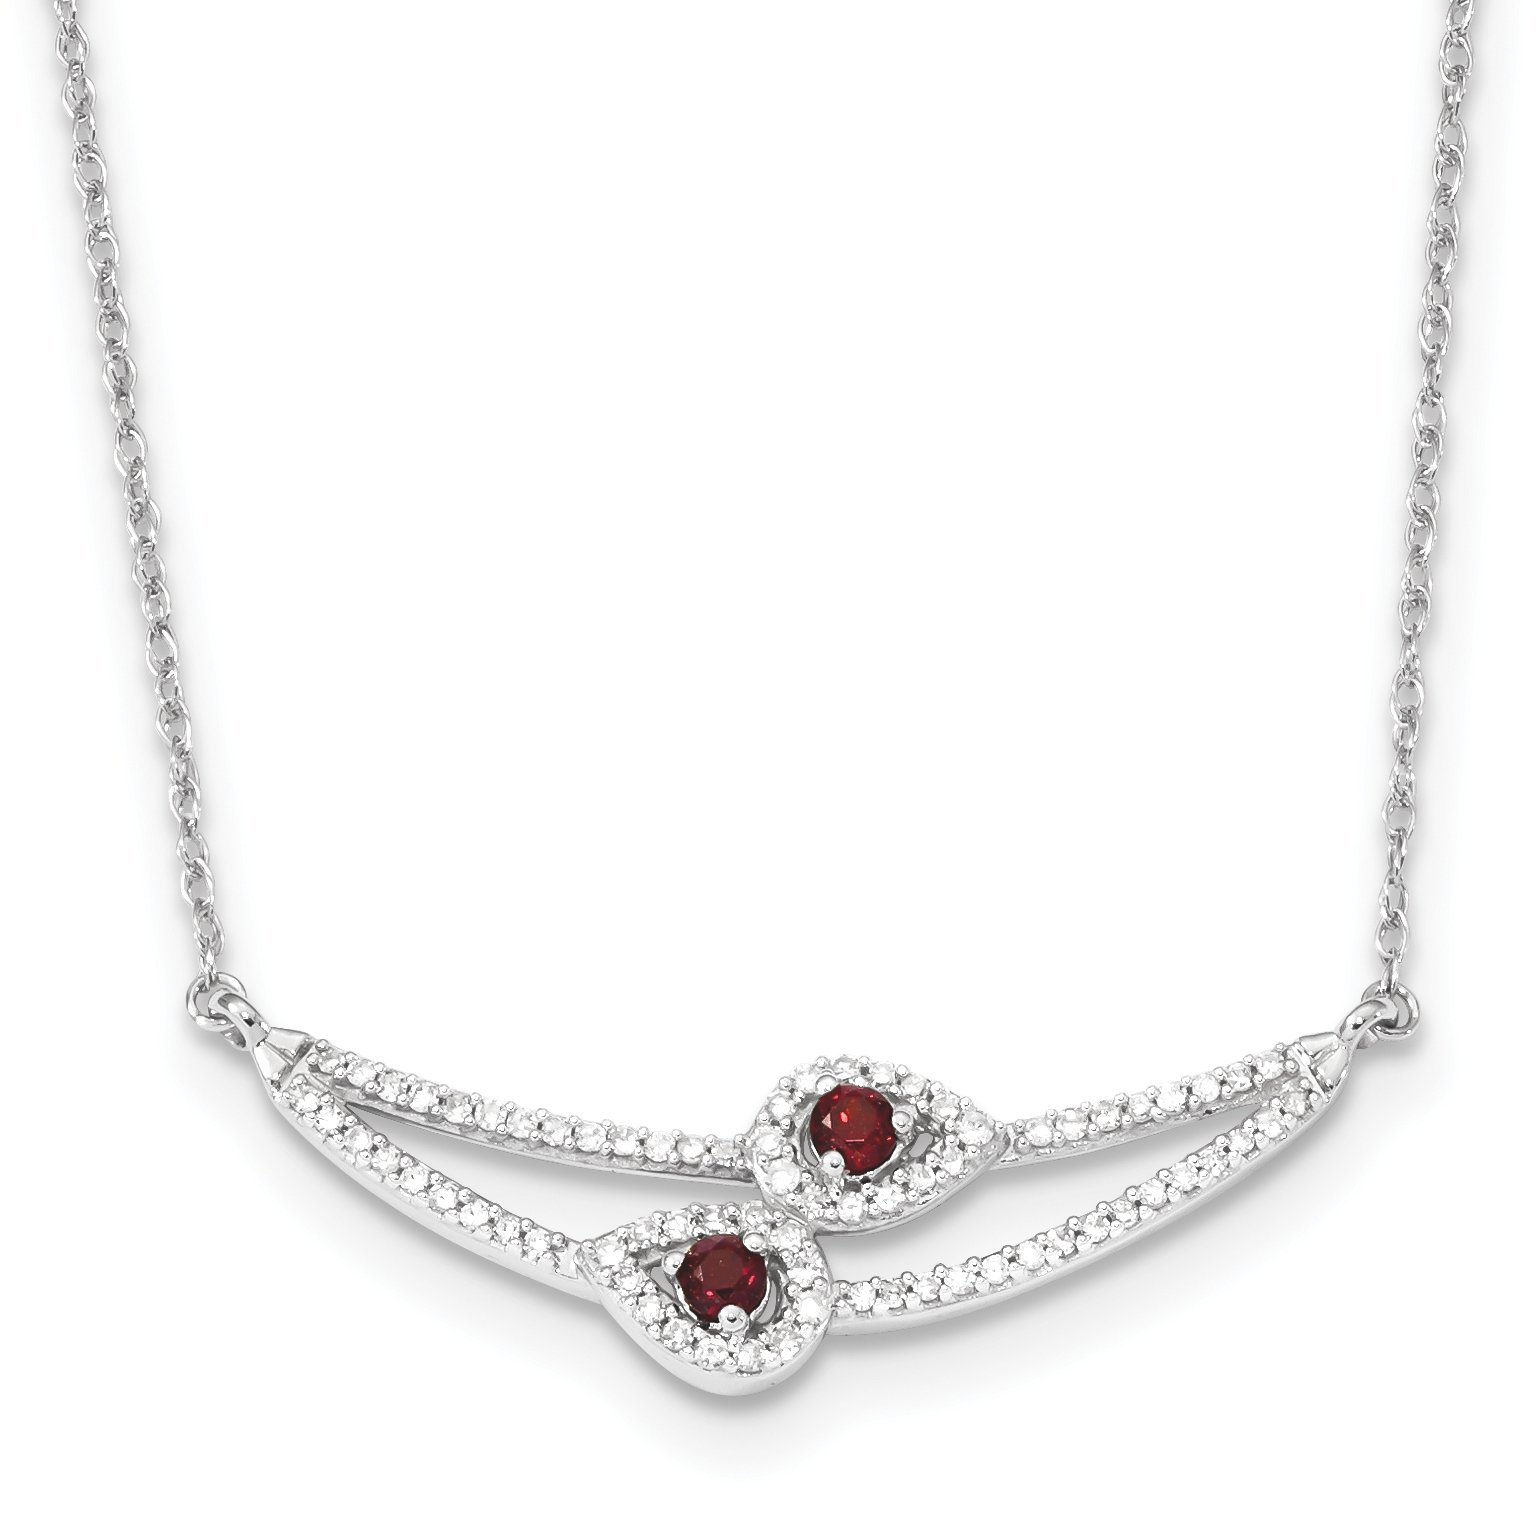 ICE CARATS 14k White Gold Diamond Red Garnet Chain Necklace Gemstone Fine Jewelry Gift Set For Women Heart